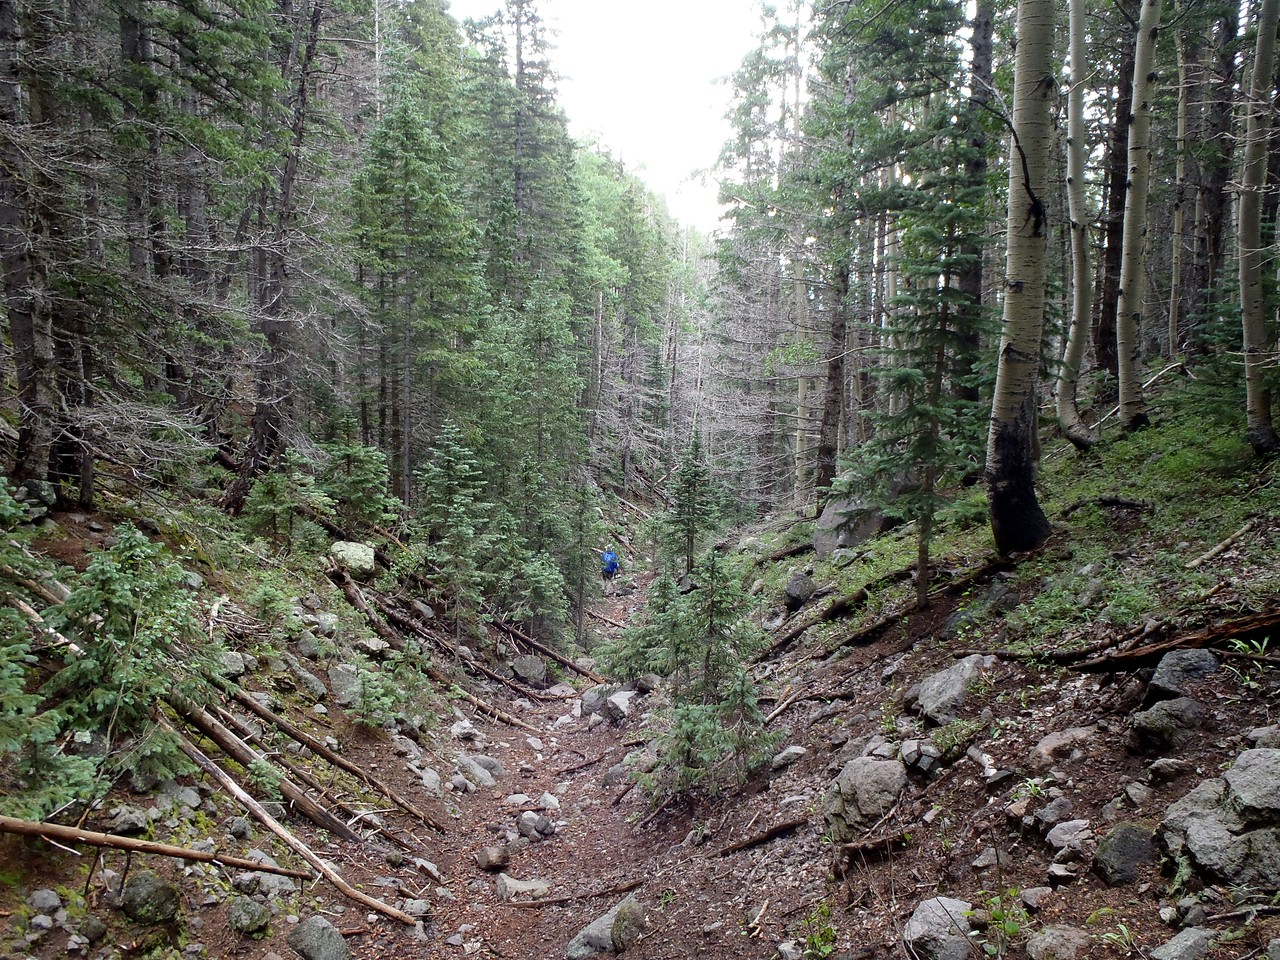 The hike up Bear Jaw Canyon started out with a gentle slope up, but soon progressed very steeply.